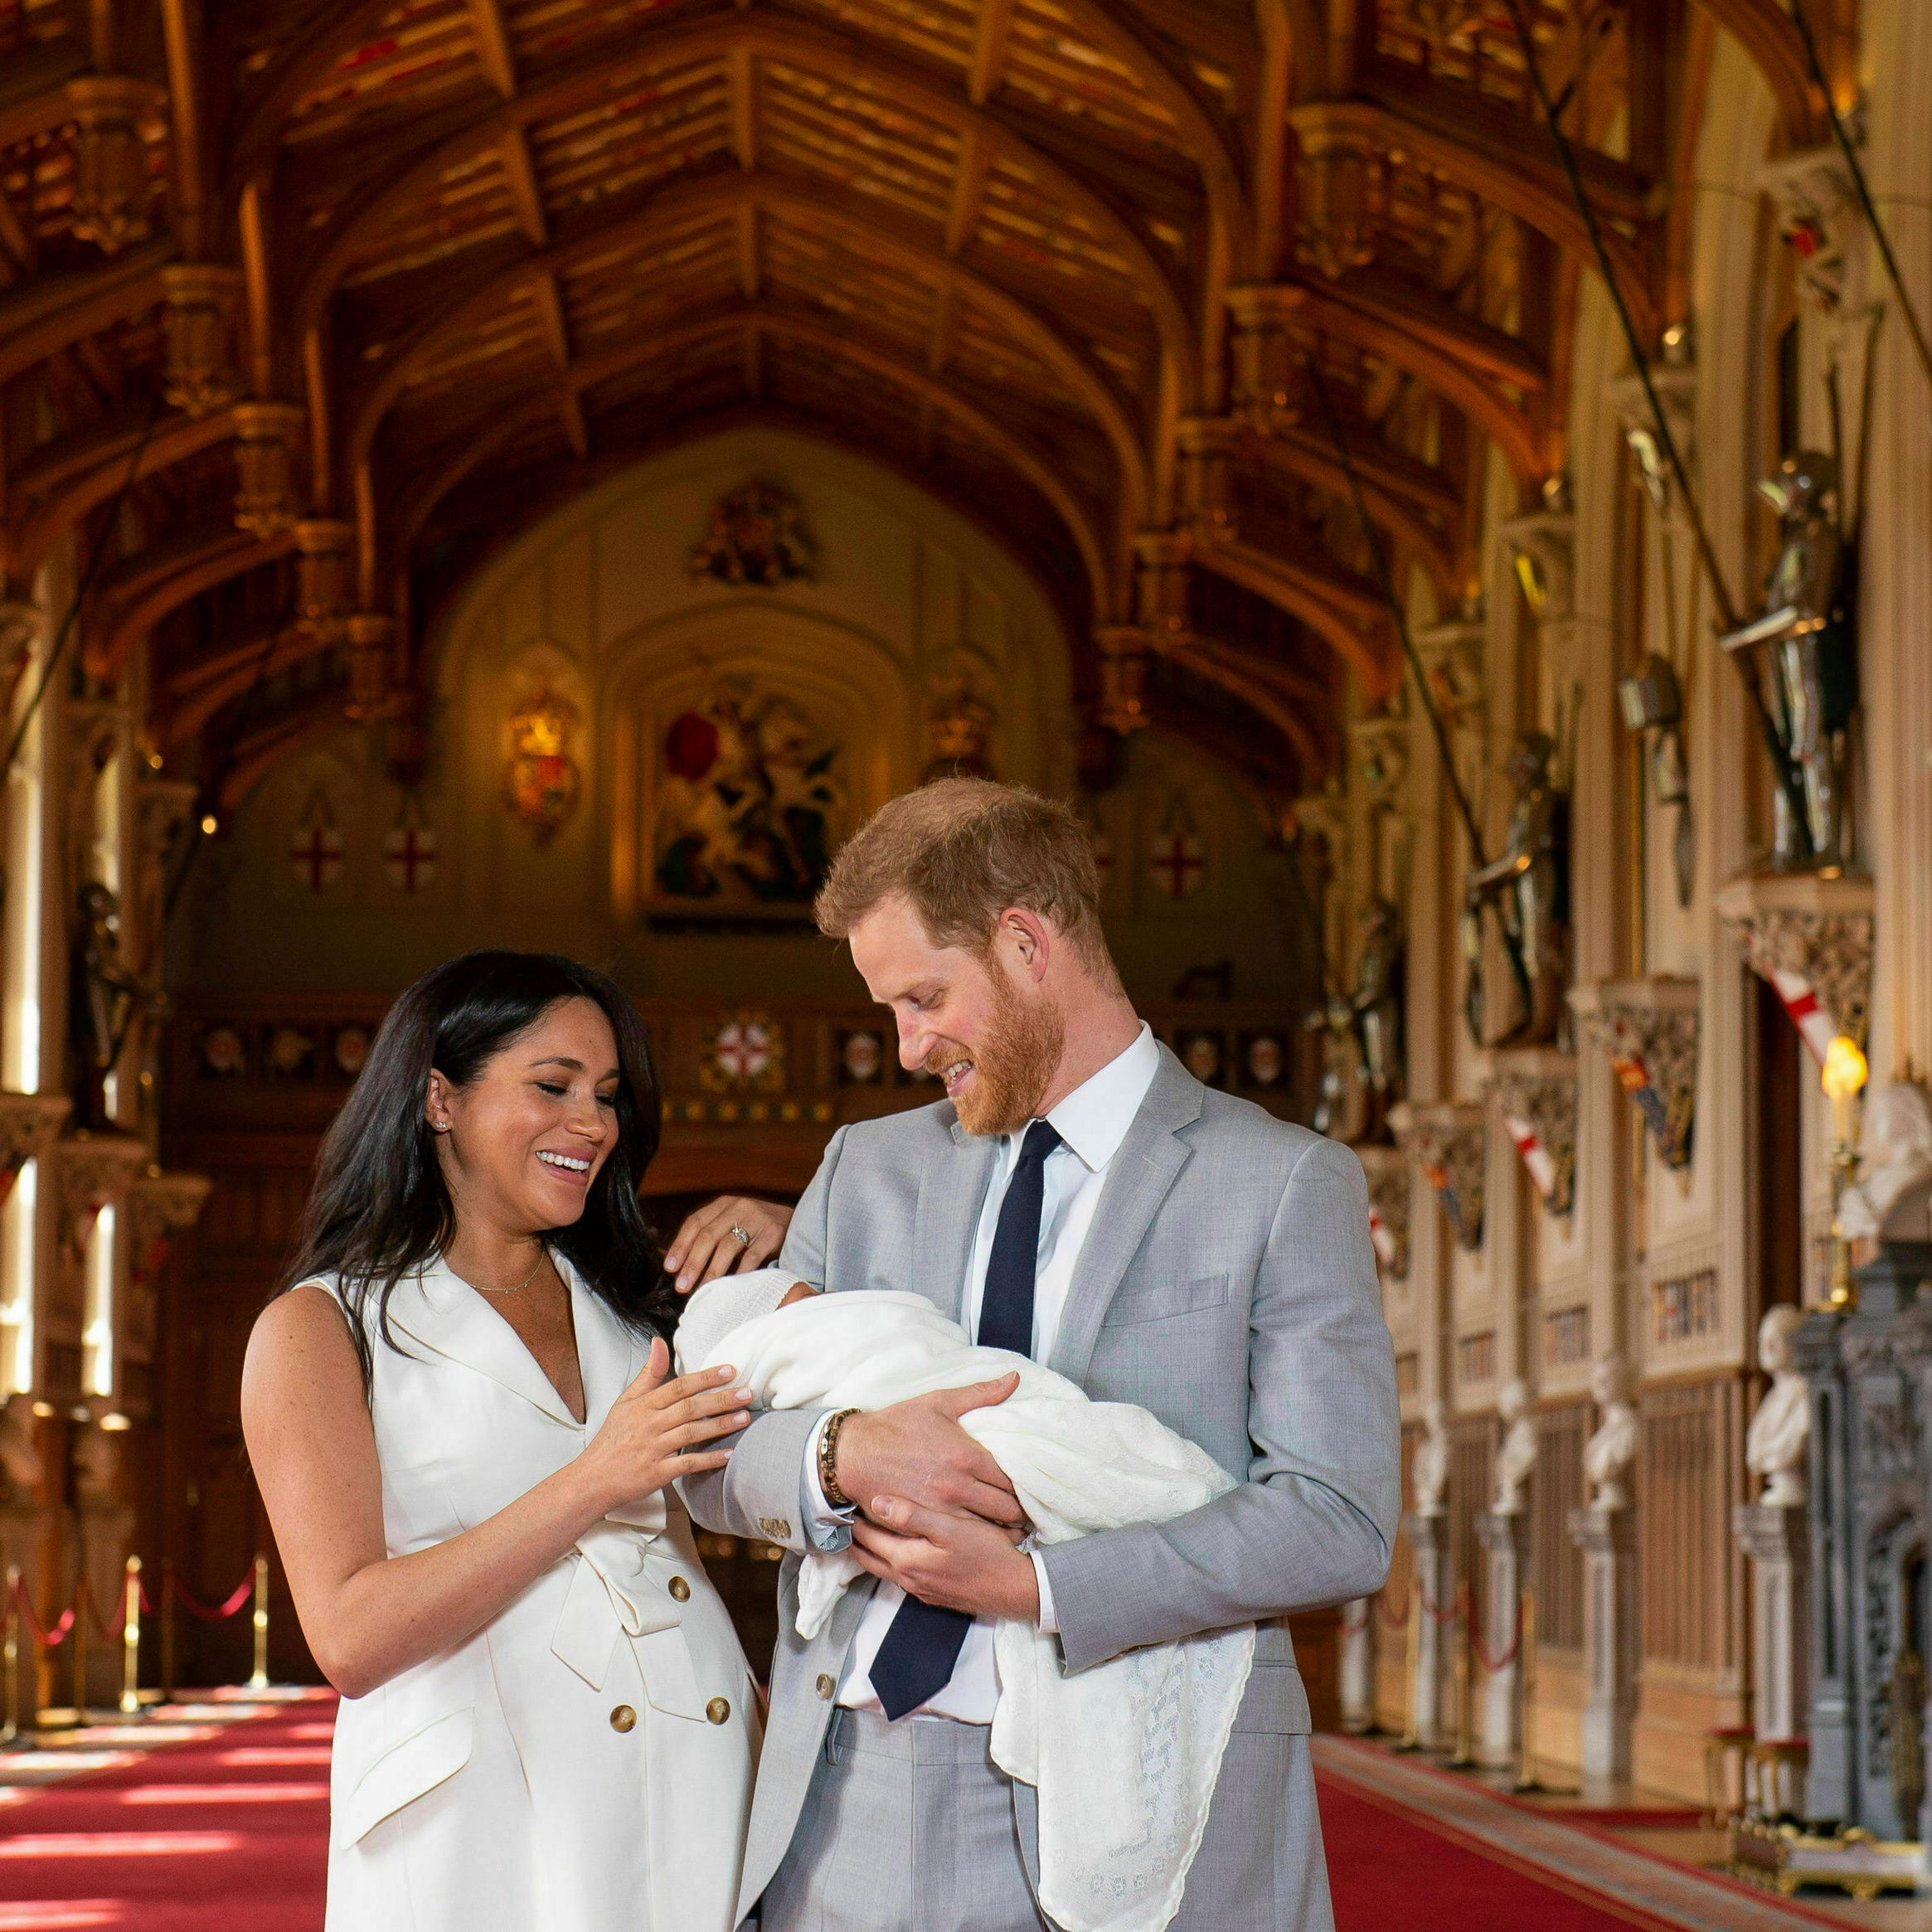 Meghan, Harry present royal newborn to public